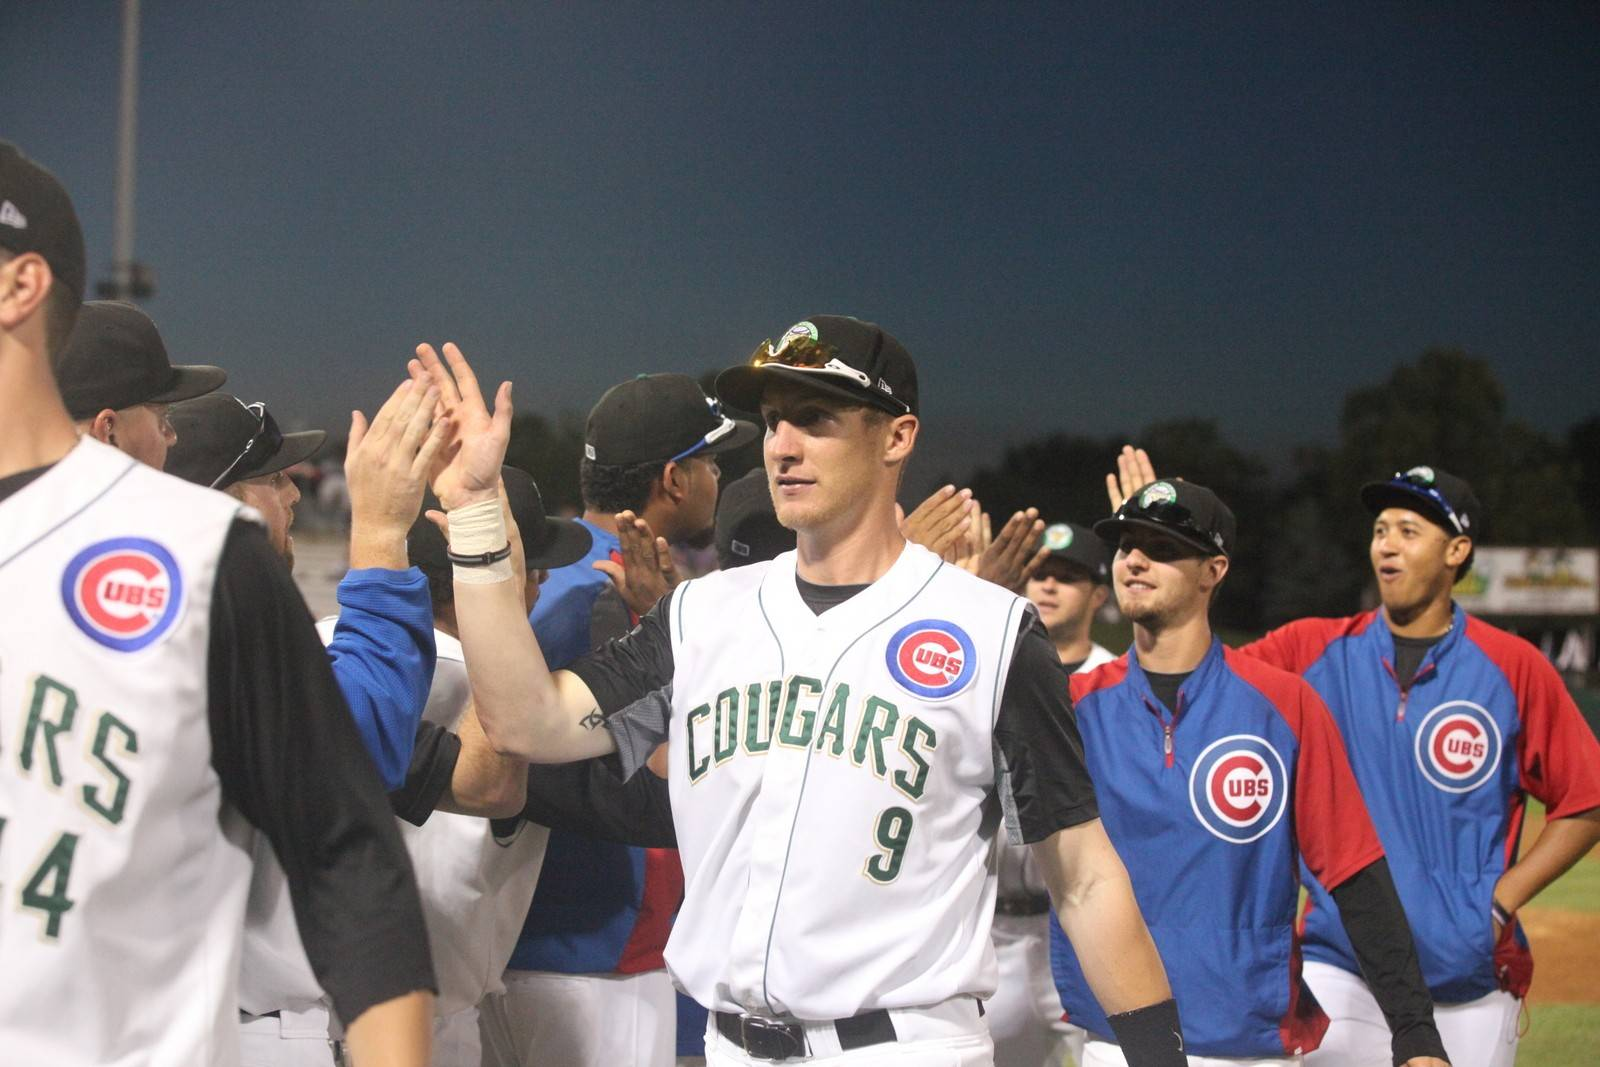 Cubs leaving Kane County Cougars for South Bend